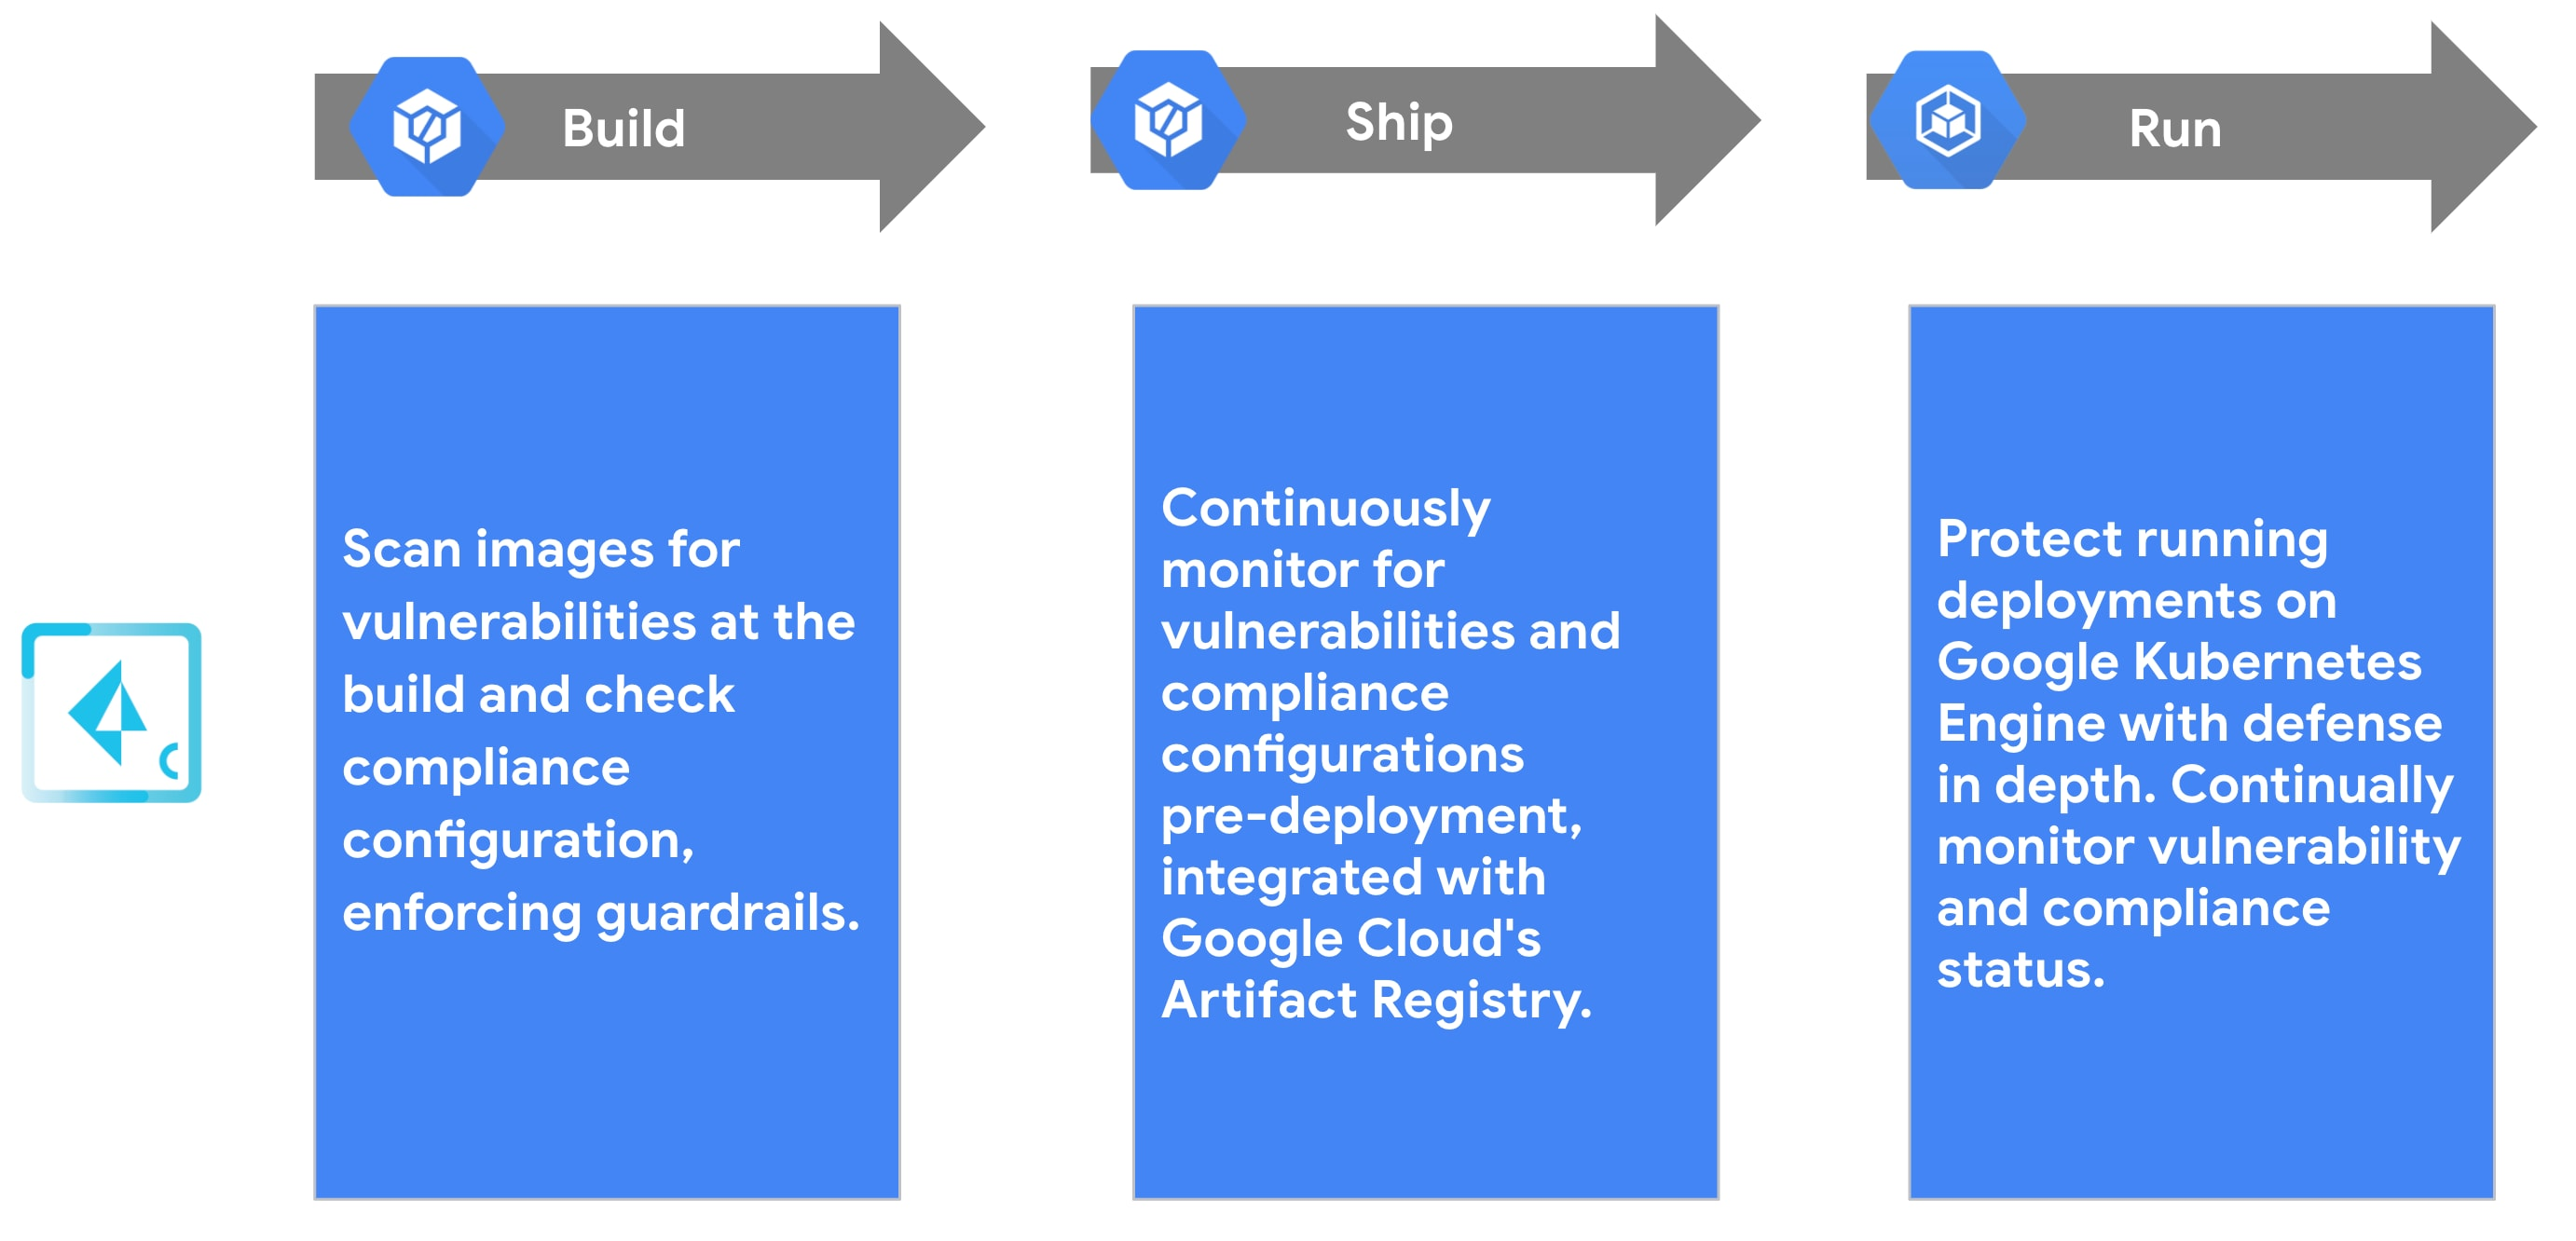 Highlighting how Prisma Cloud supports Google Cloud across the application lifecycle